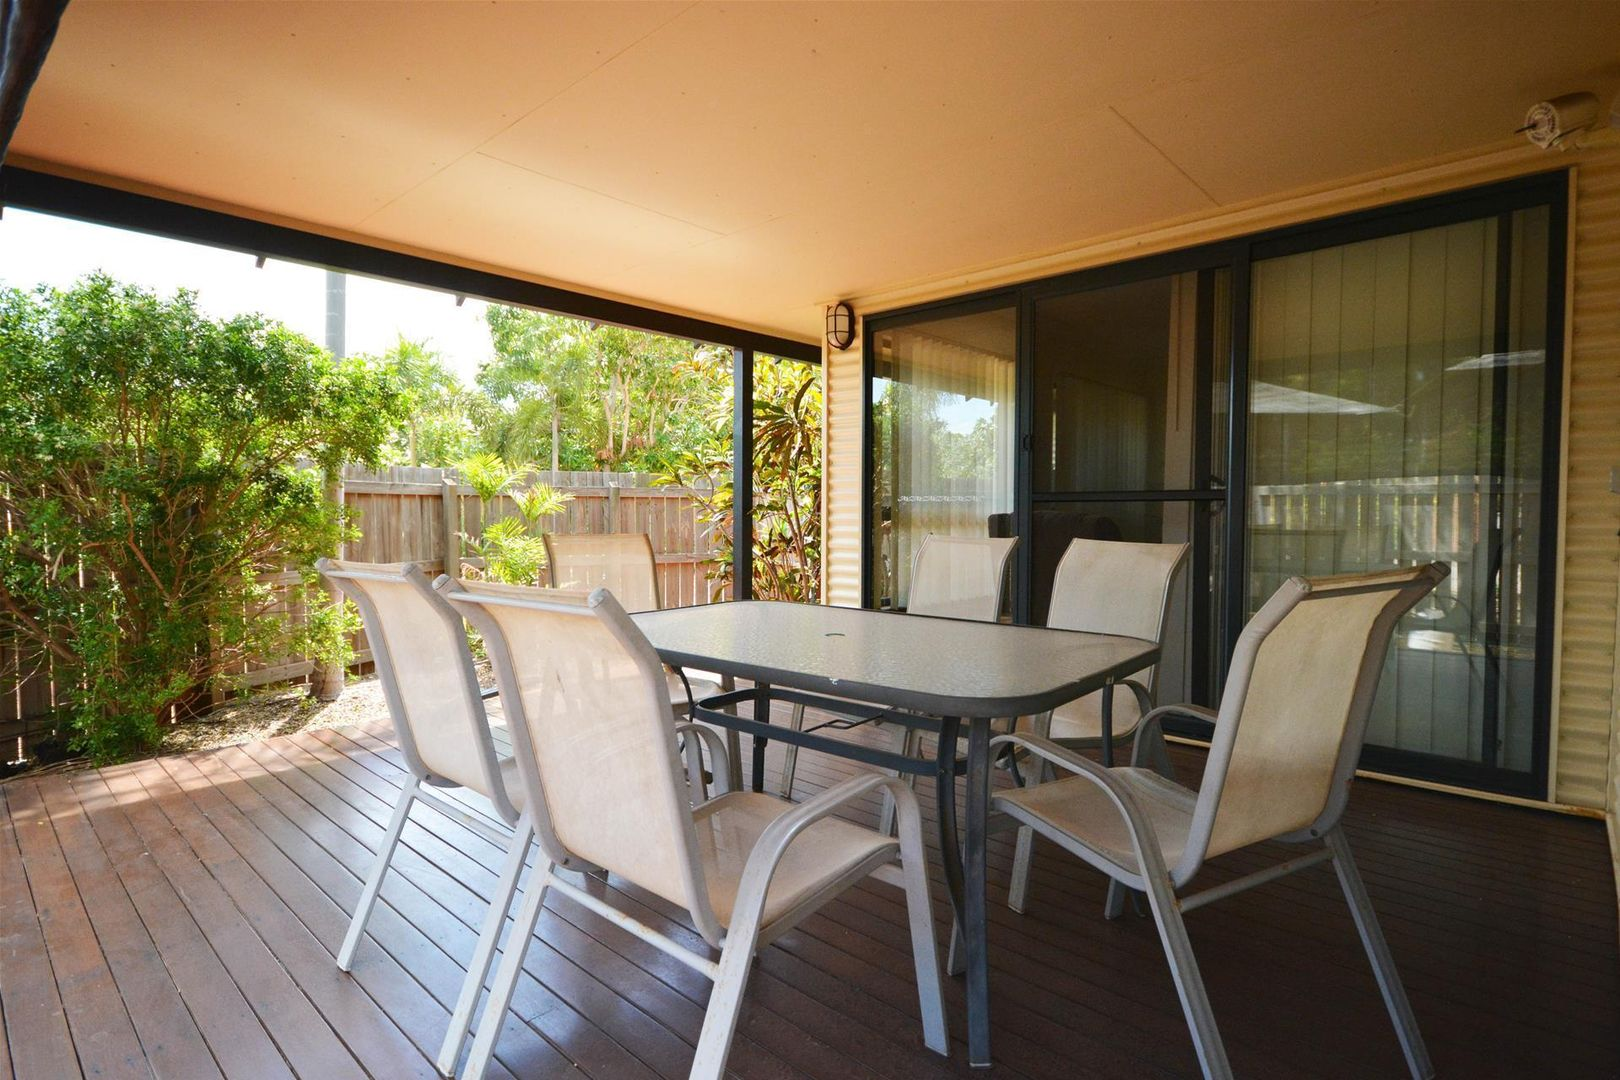 7/8 Seko Place, Cable Beach WA 6726, Image 1